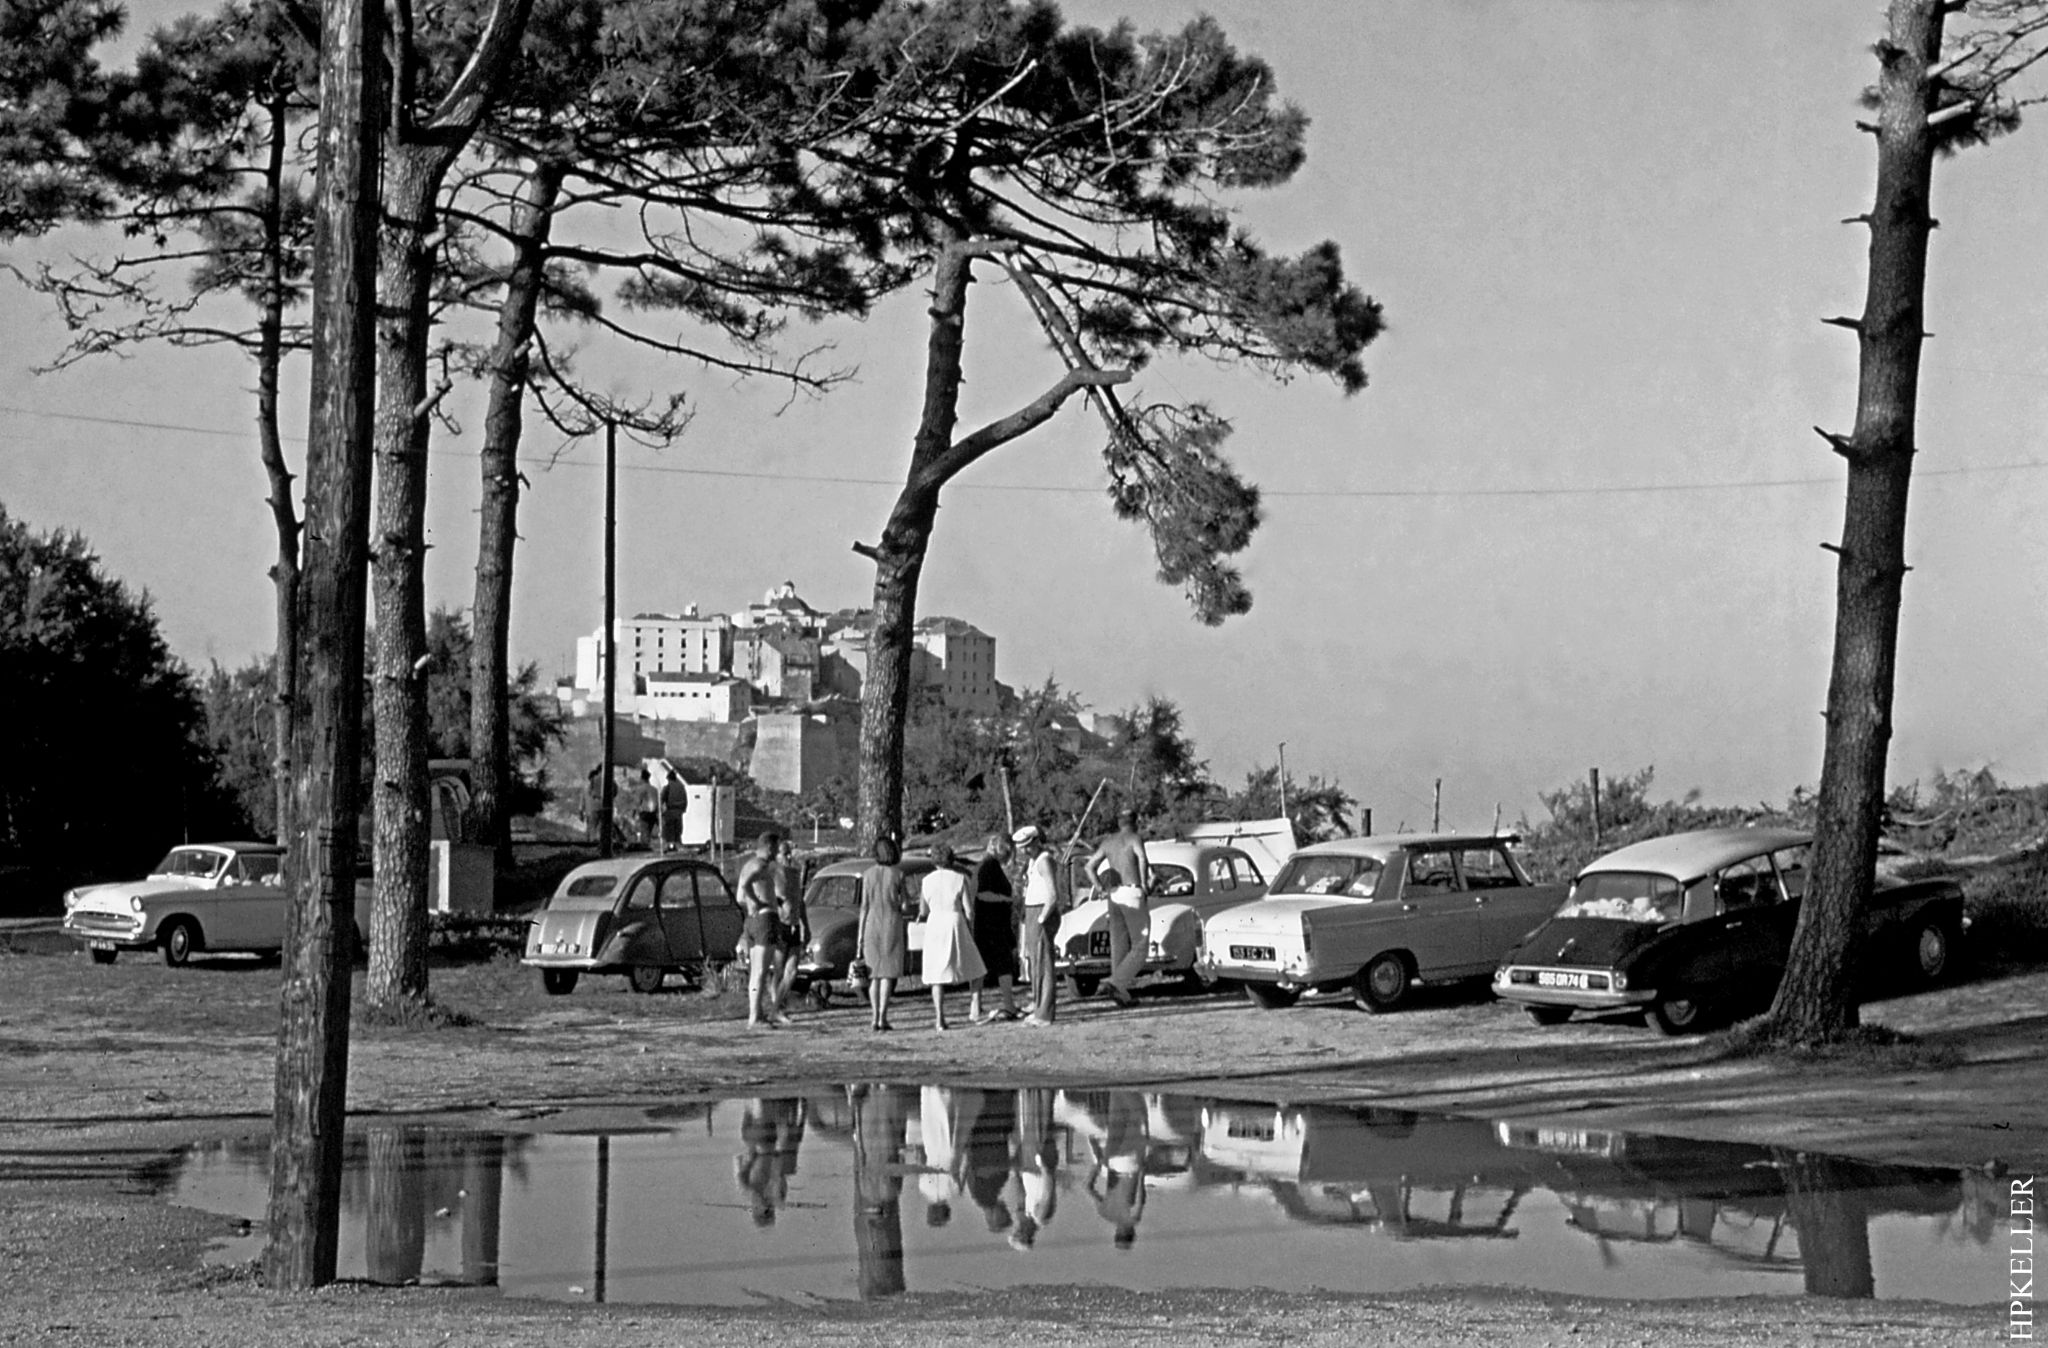 Many years ago at the French Riviera, ...near Saint-Tropez_Analogscan. by Hans-Peter Keller